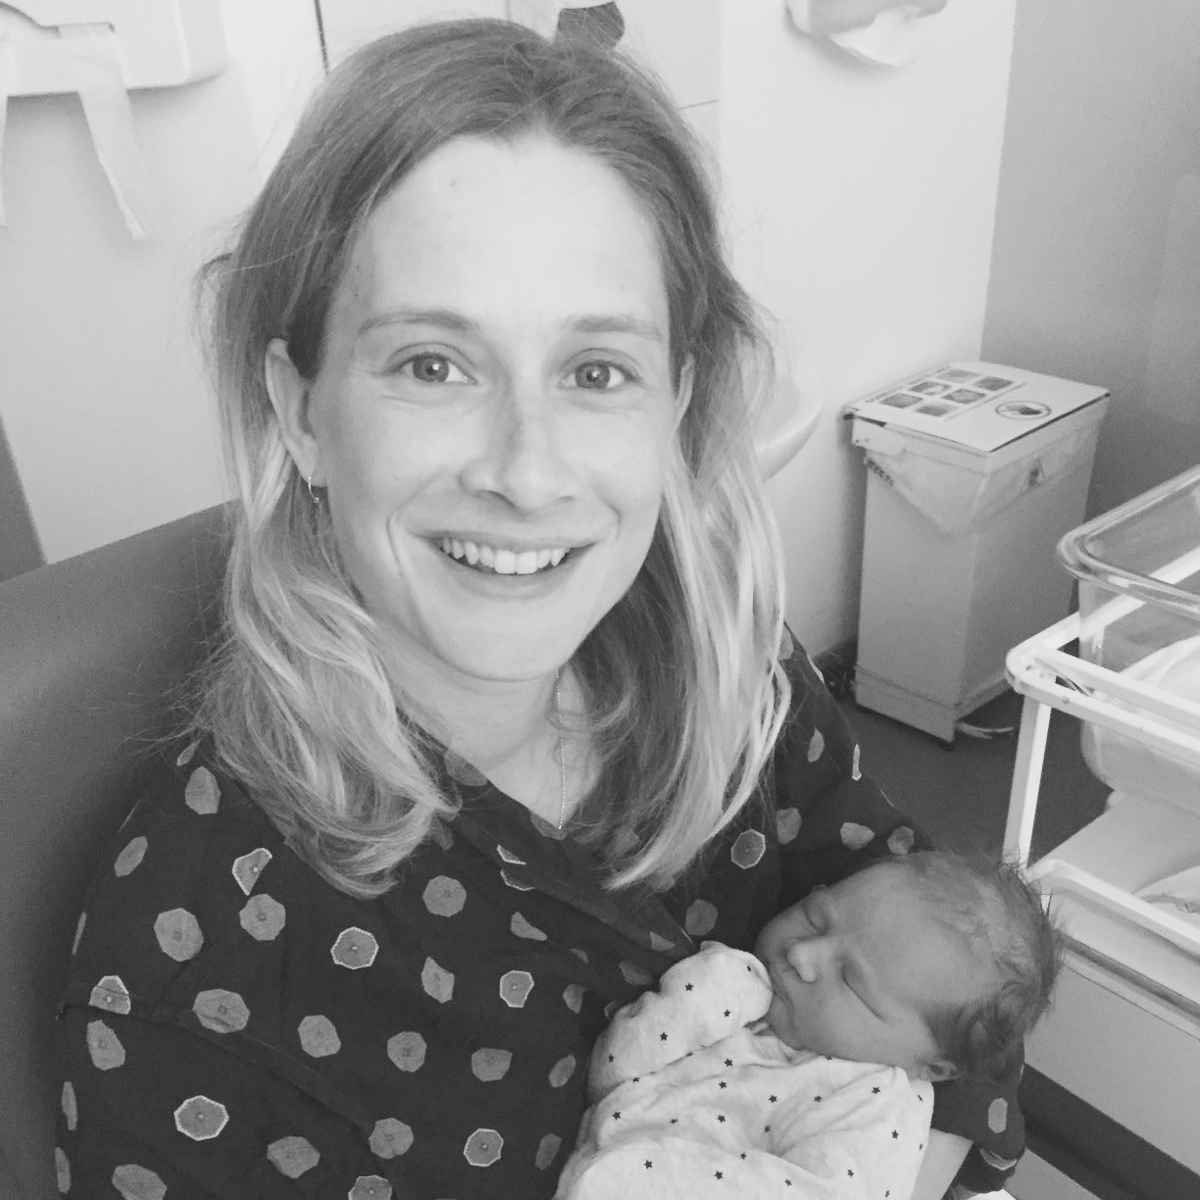 Inspirational story about giving birth to a big baby